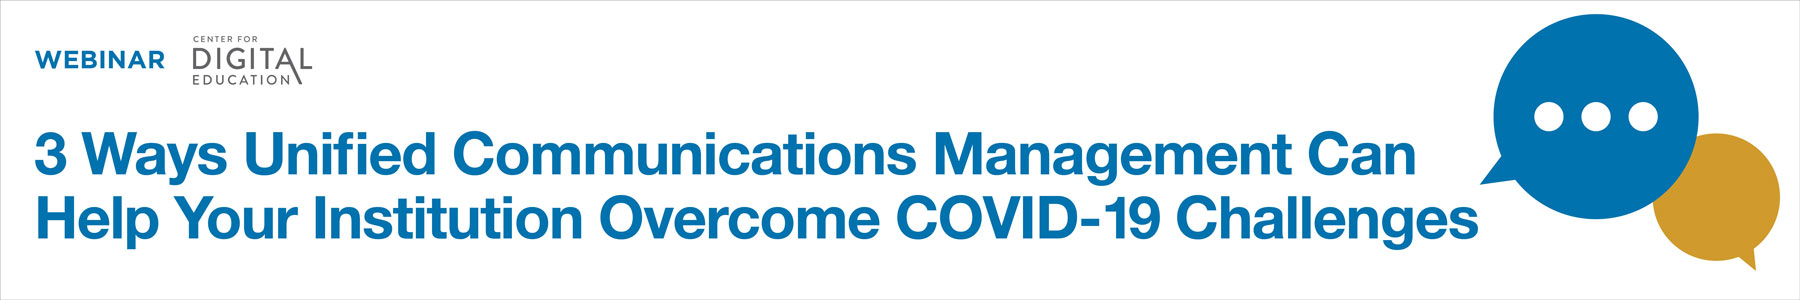 3 Ways Unified Communications Management Can Help Your Institution Overcome COVID-19 Challenges